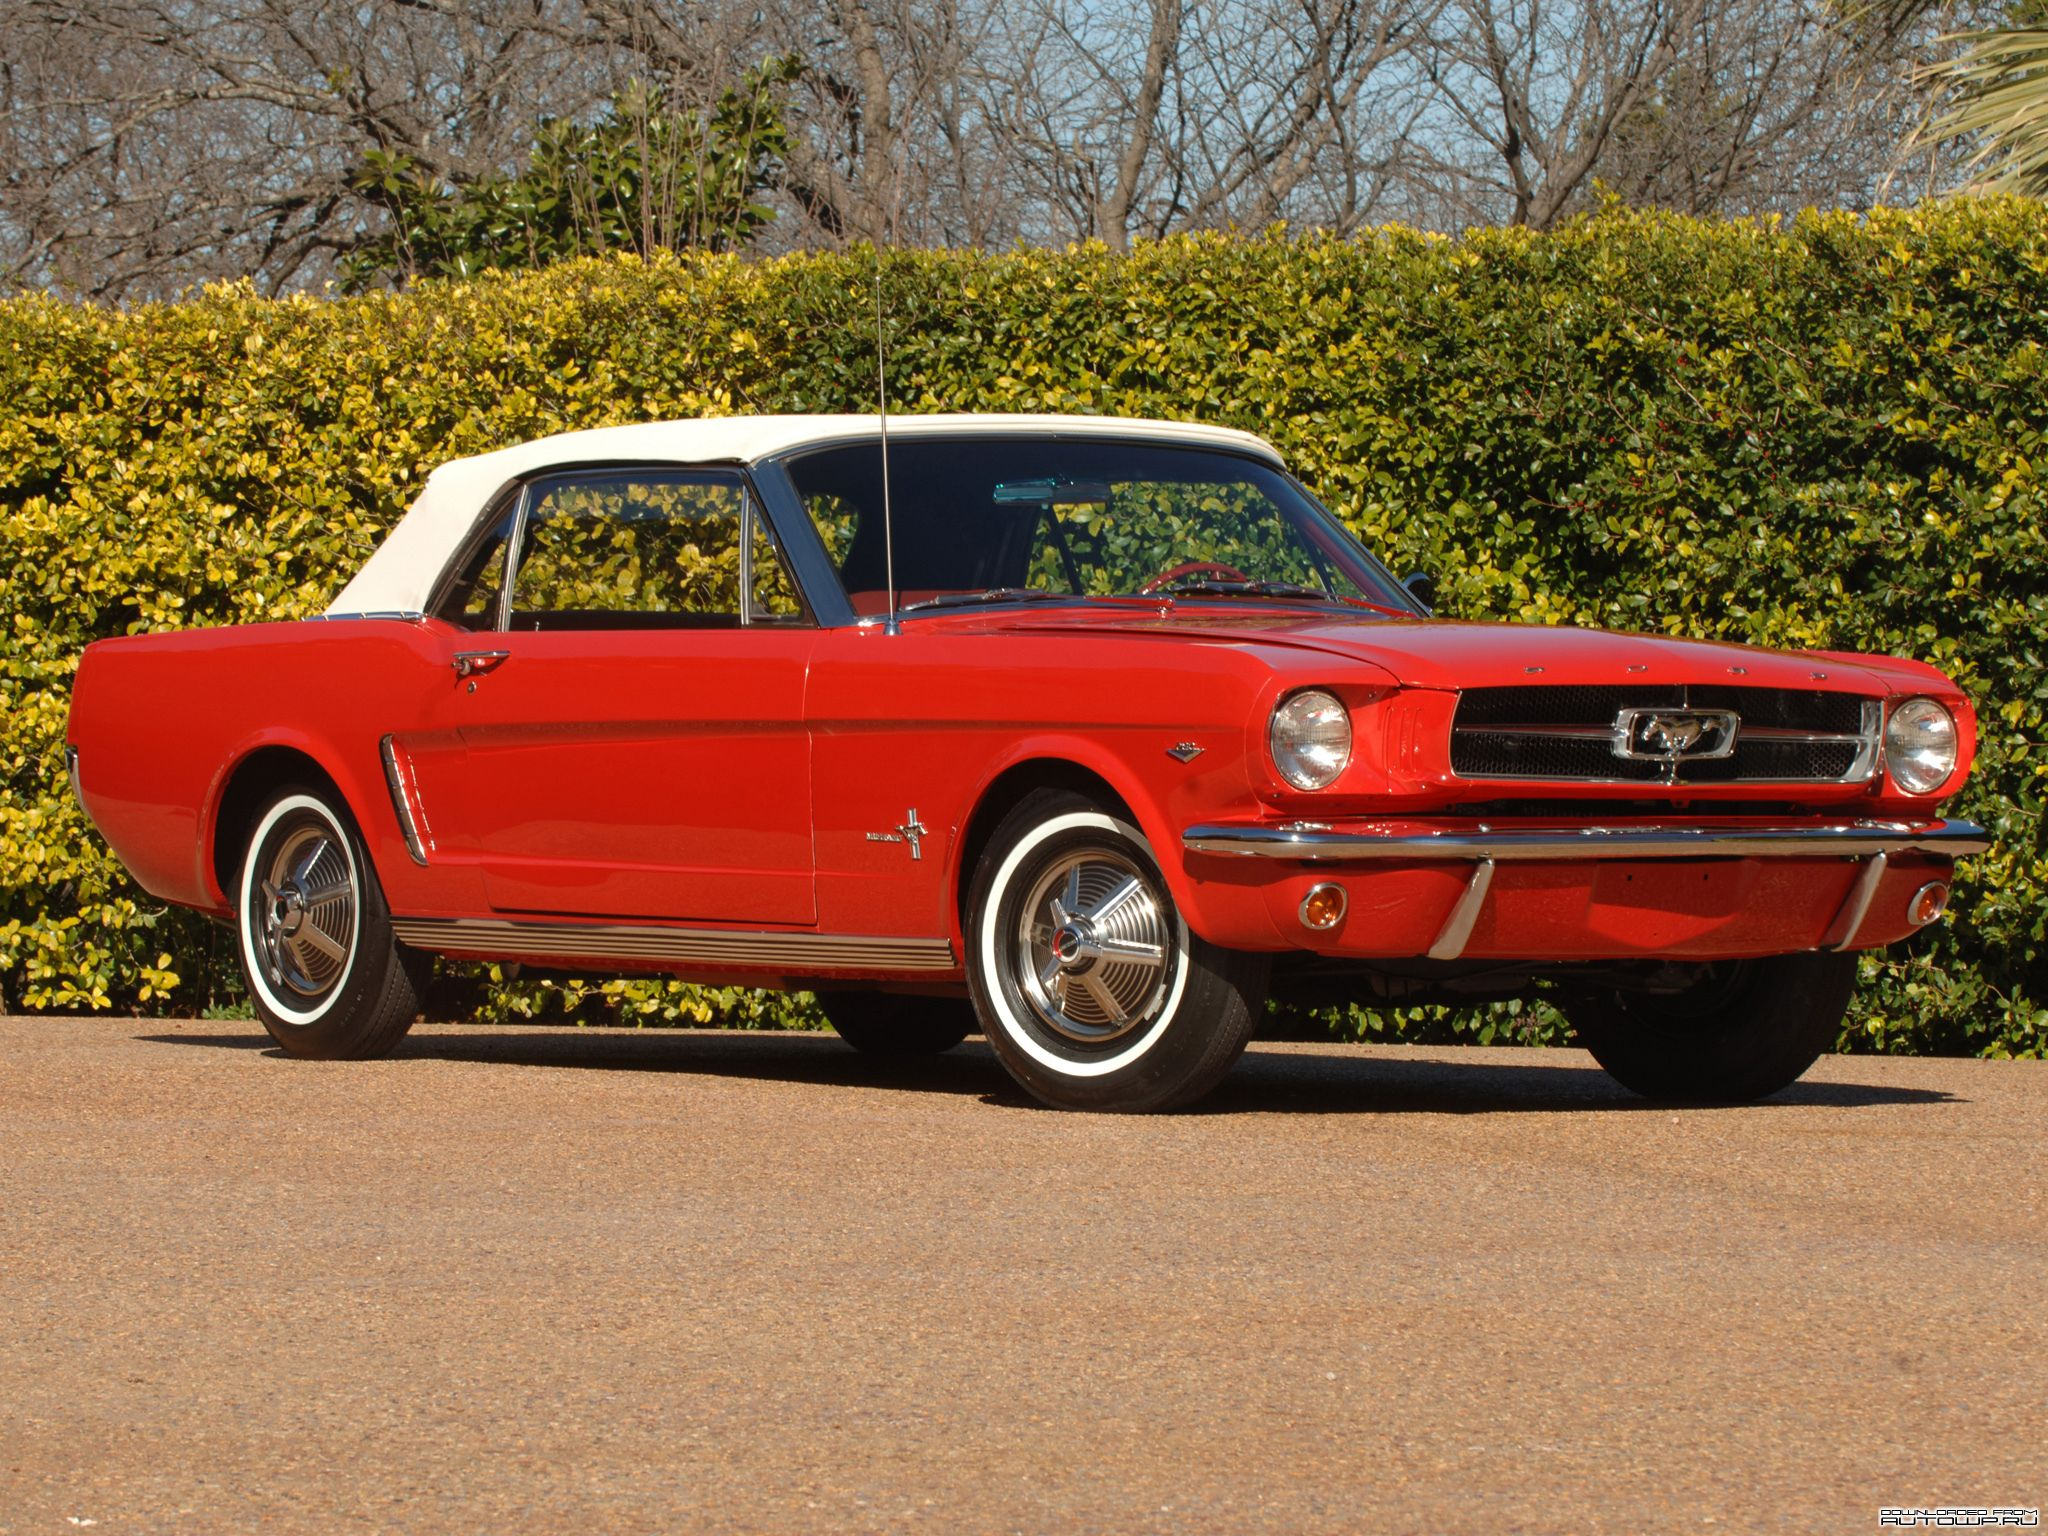 1964 1 2 Mustang Convertible Candy Le Red With White Wall Tires Isn T She A Beauty Jw